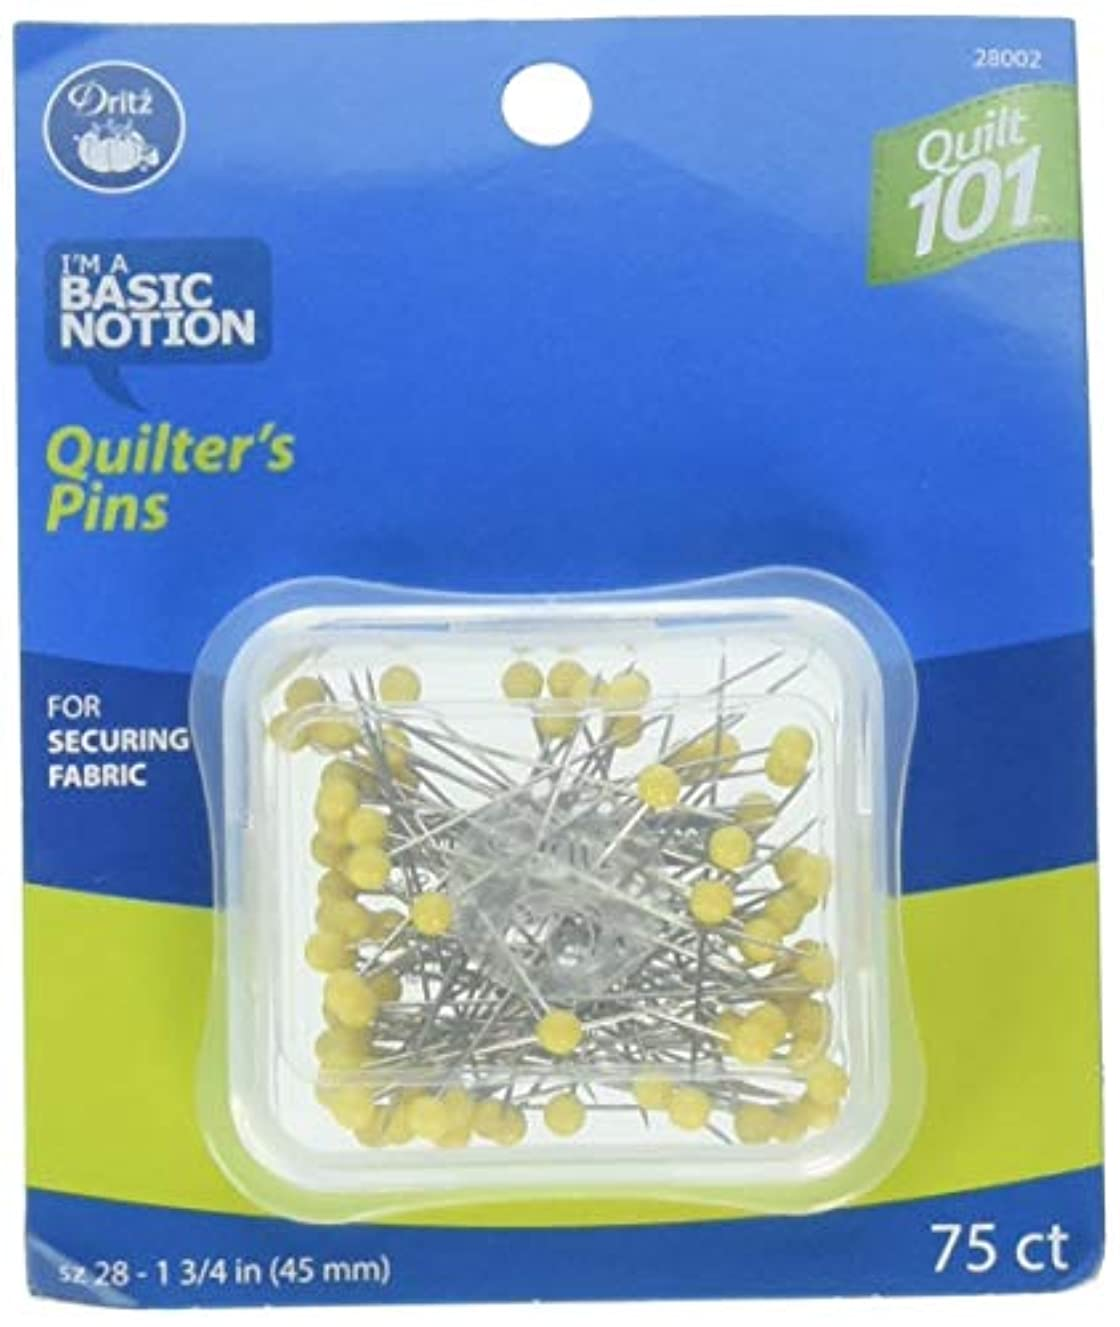 Dritz Quilt 101 28002 Quilting Pins, 1-3/4-Inch, Yellow (75-Count)